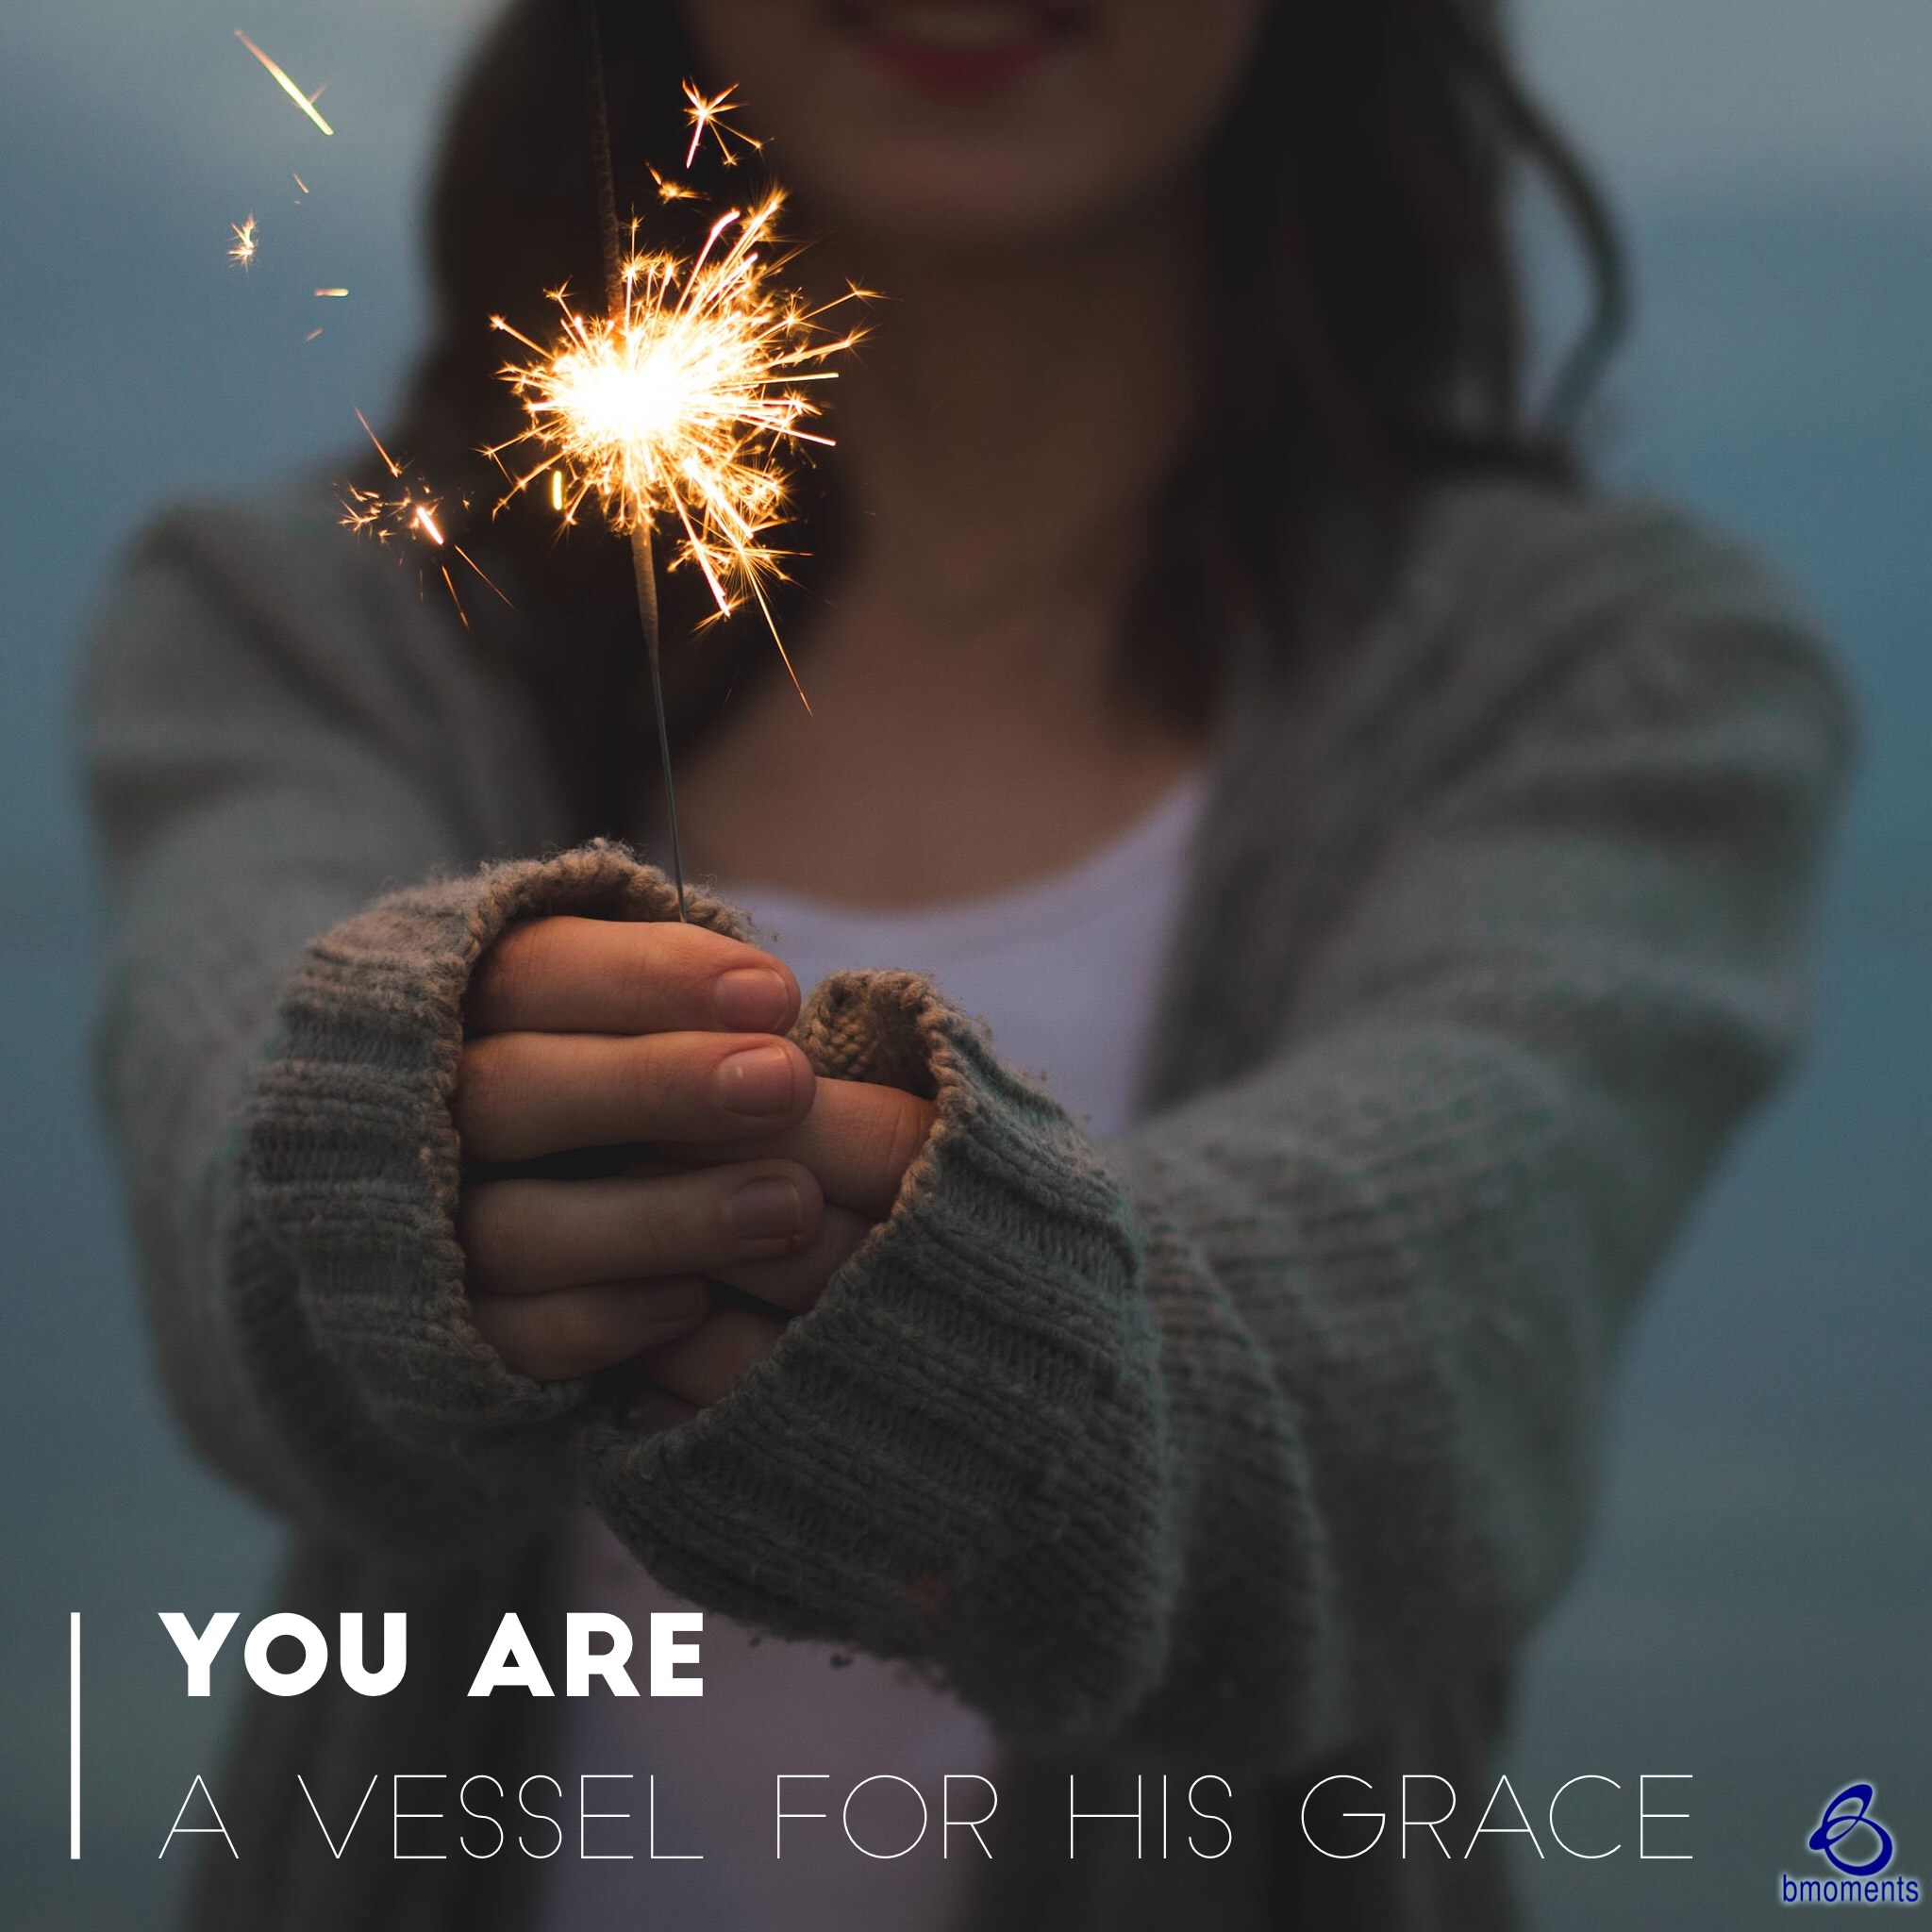 God Uses You to Reveal His Miracles